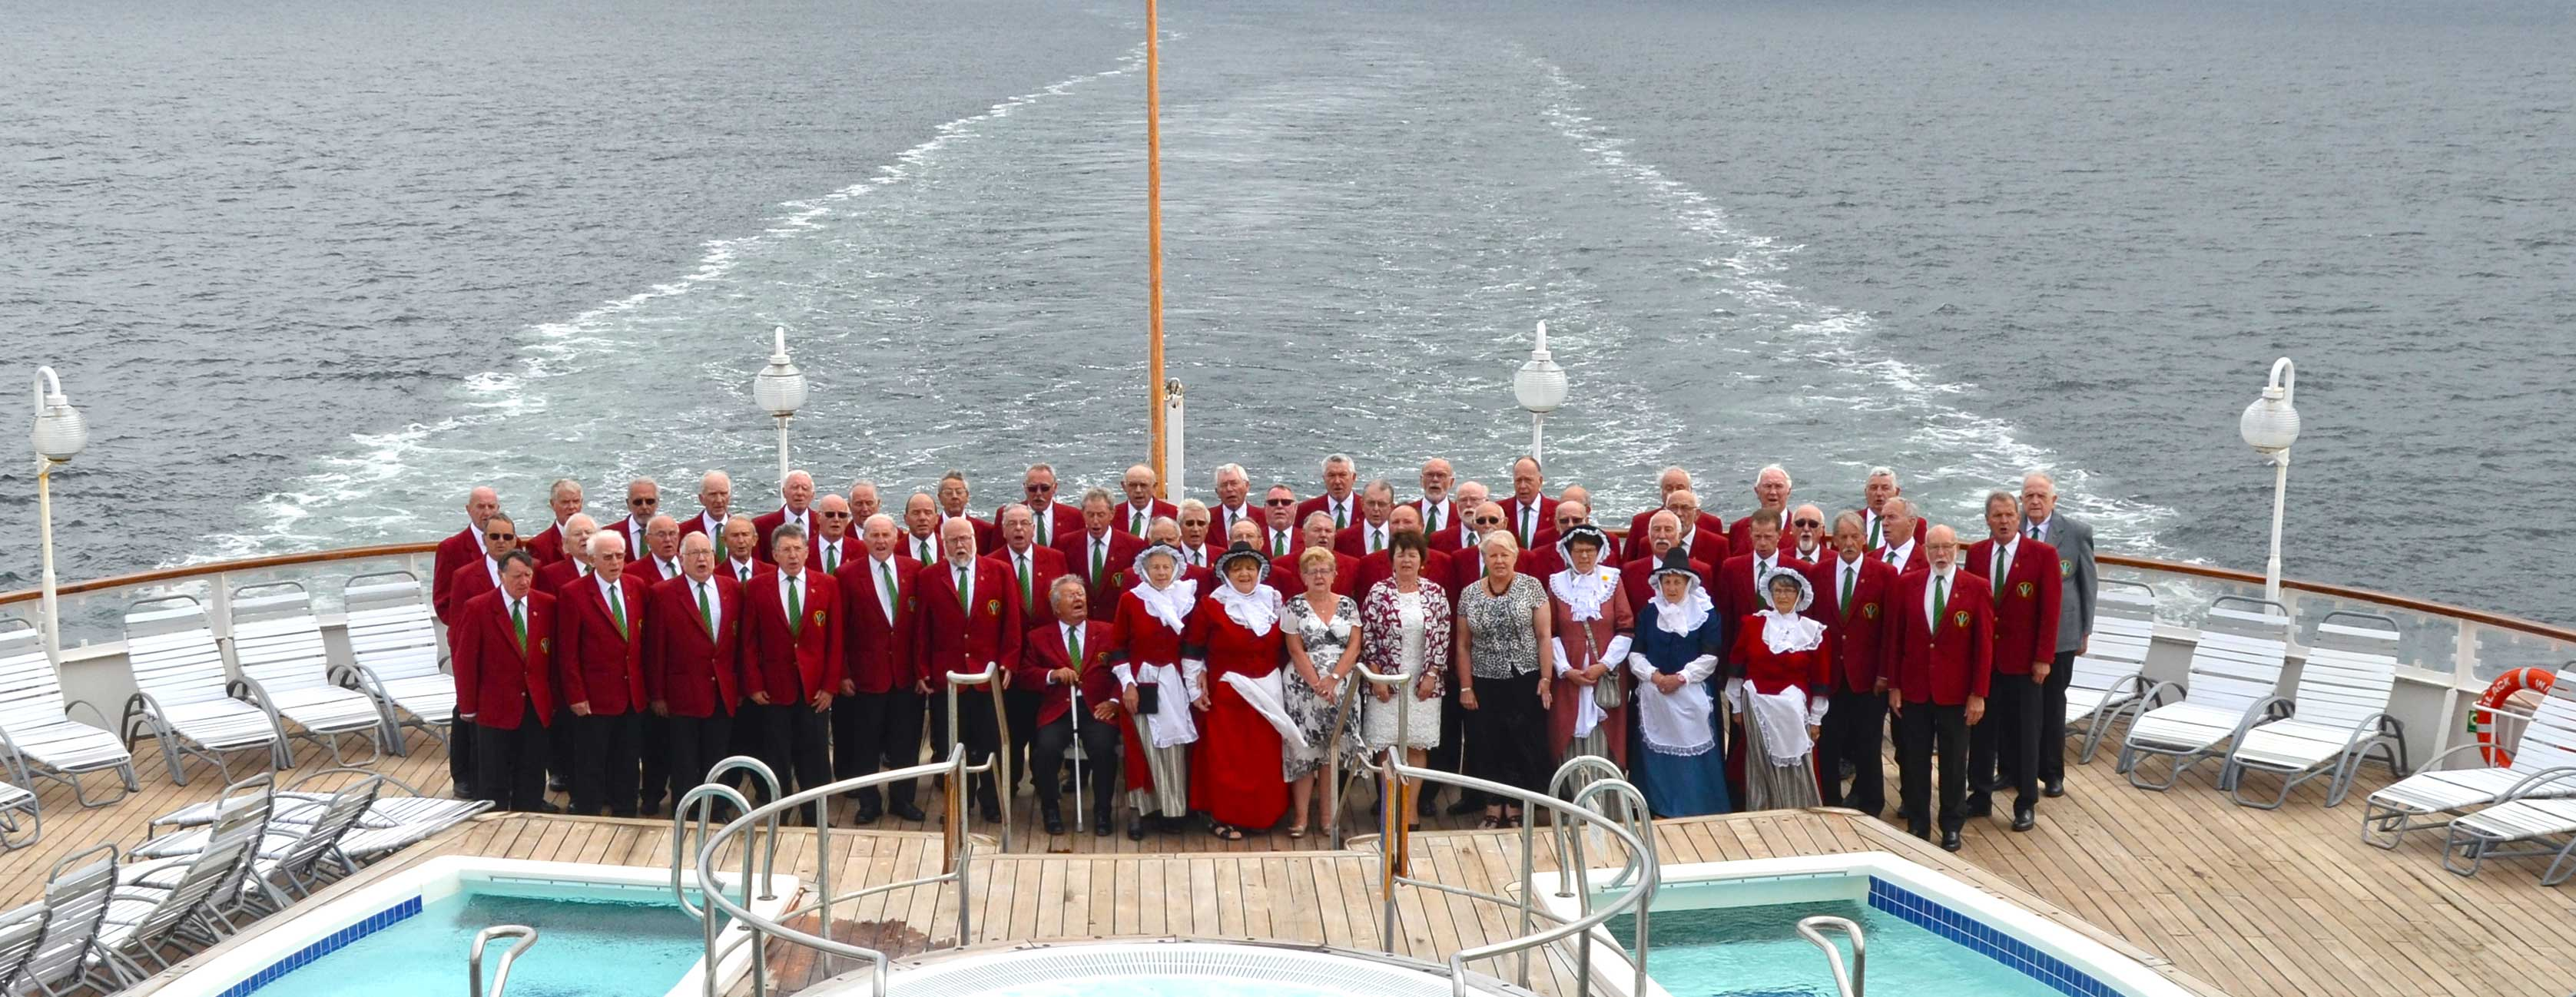 Choirs at sea